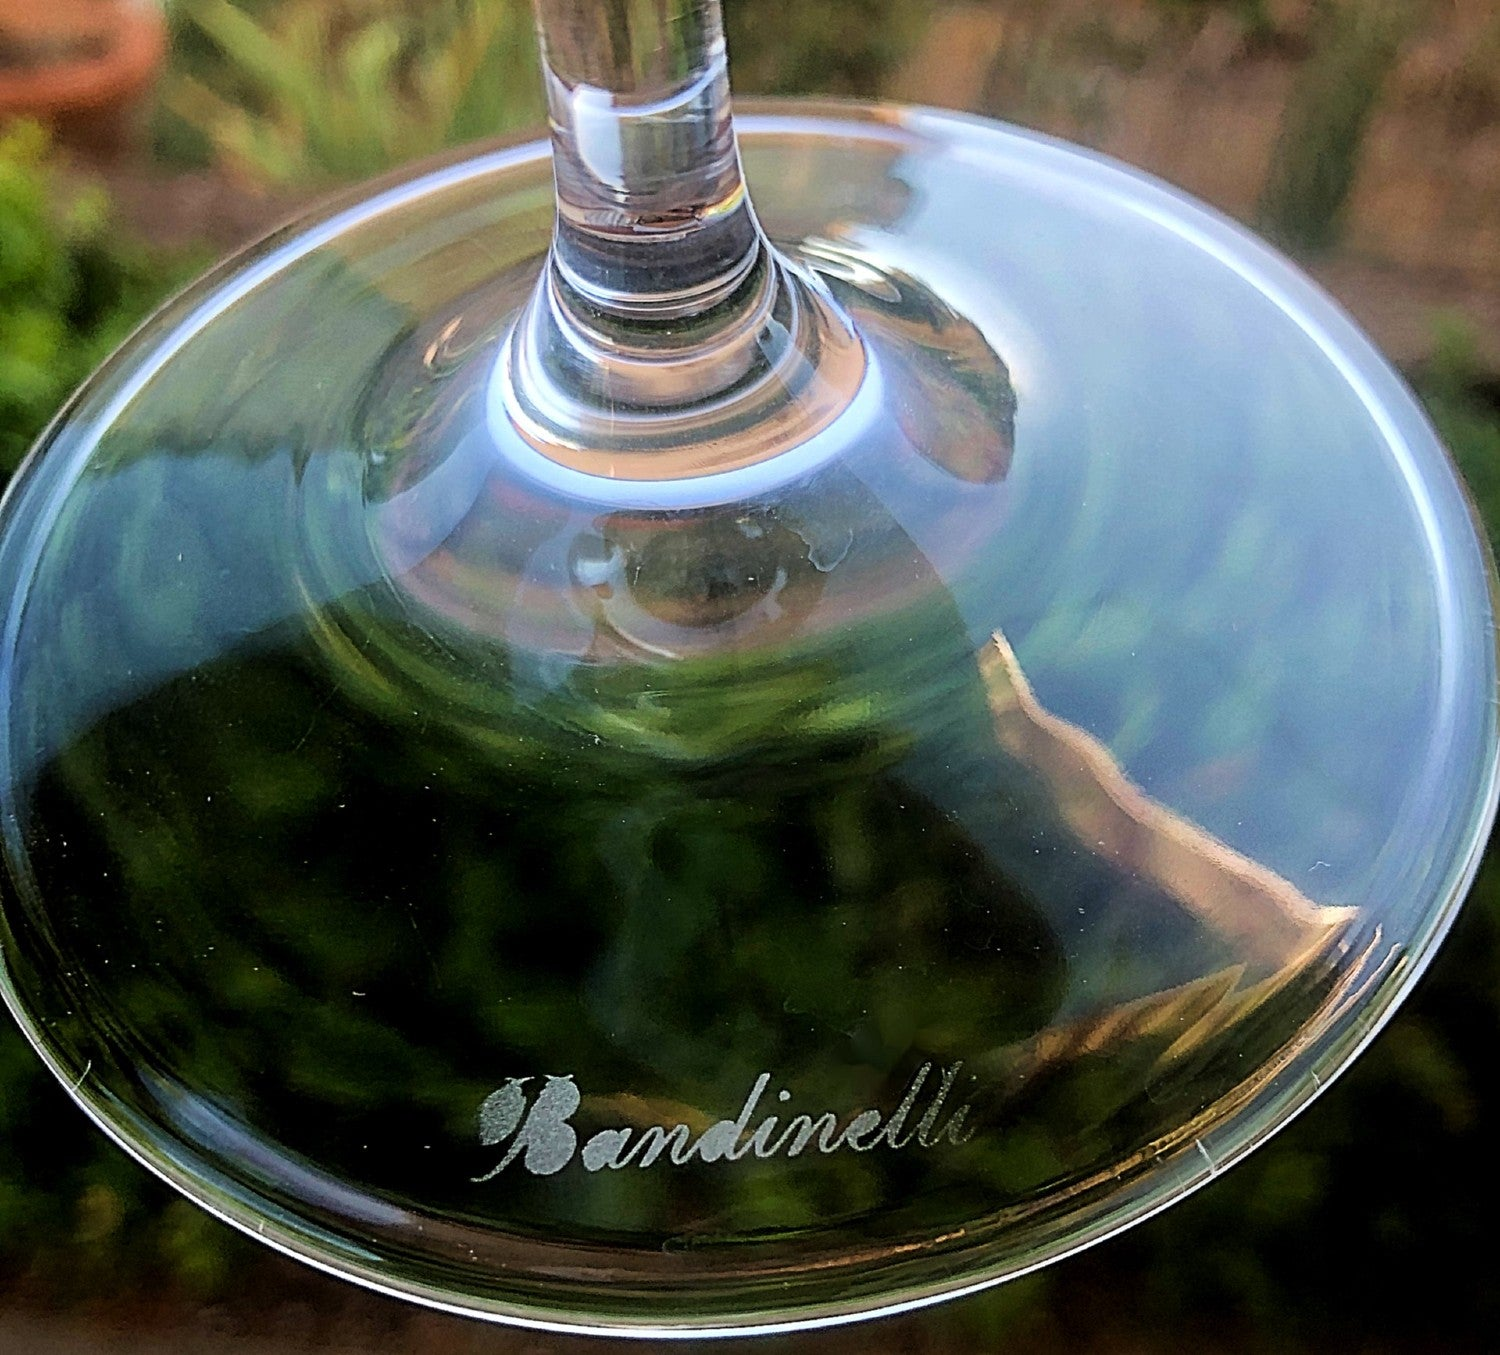 Brunello Wine Glass 3 Grapes - Hand Engraved Crystals